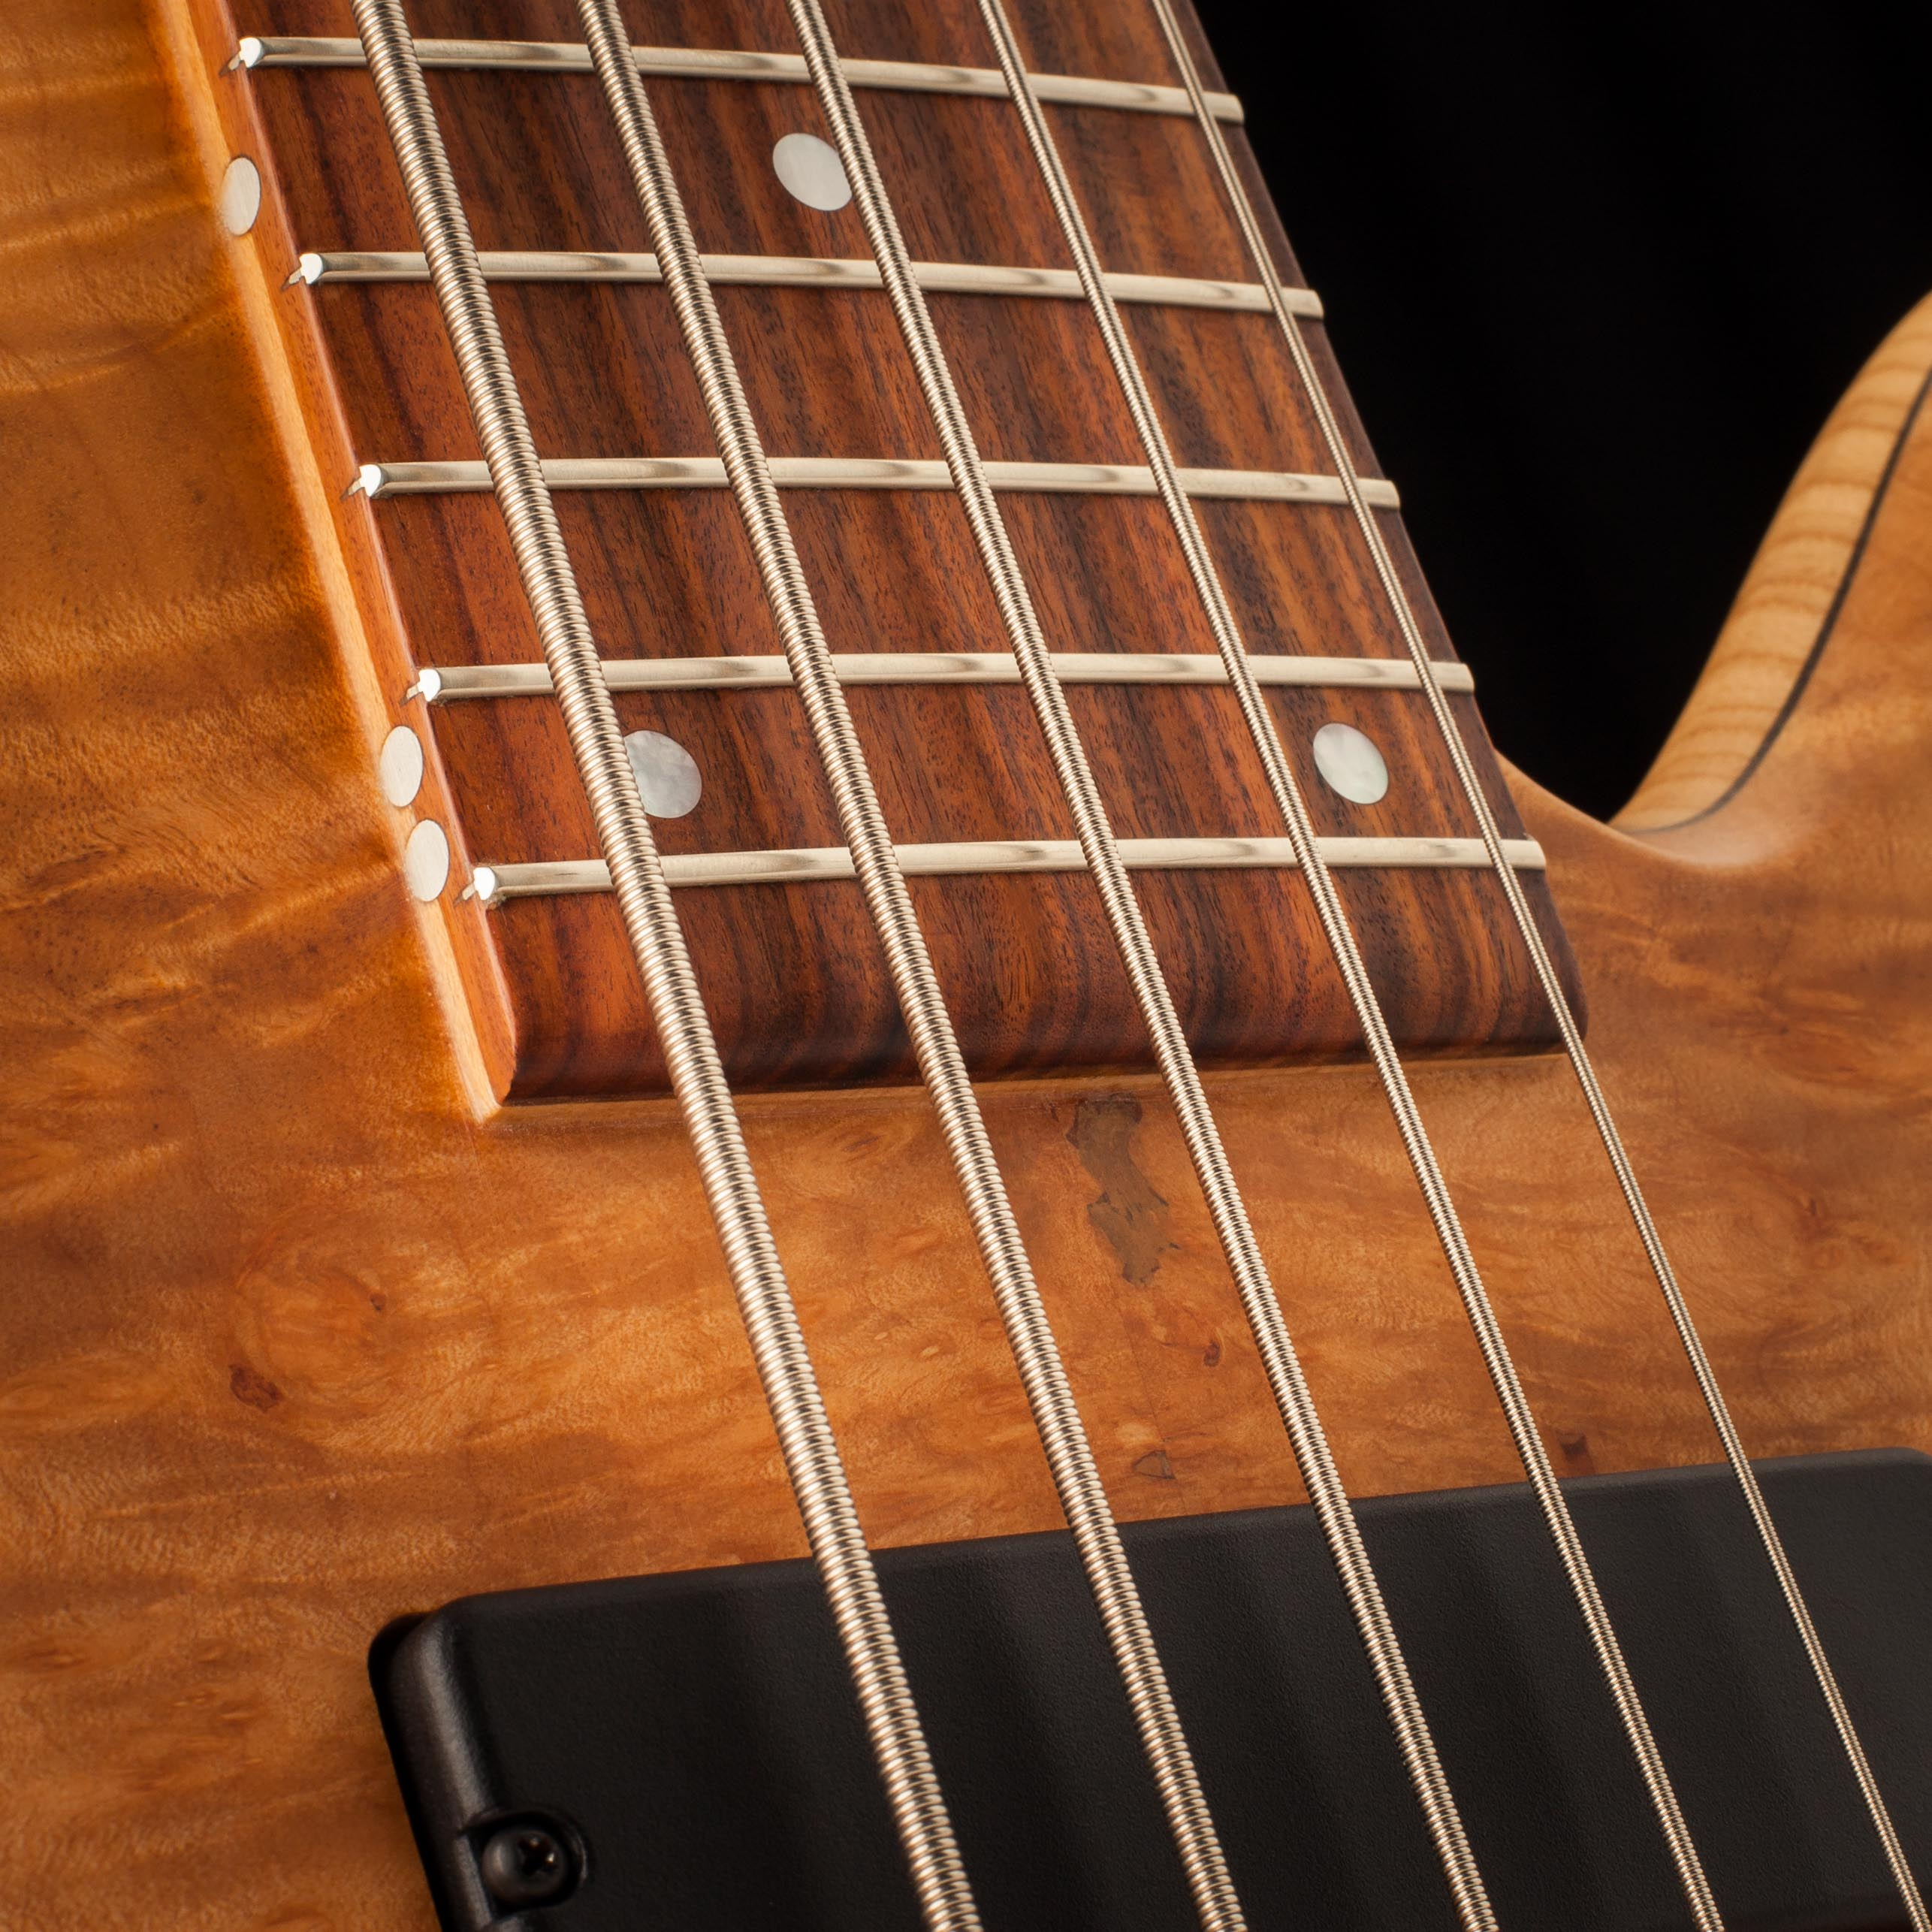 5-String Fodera Bass Frets Closeup